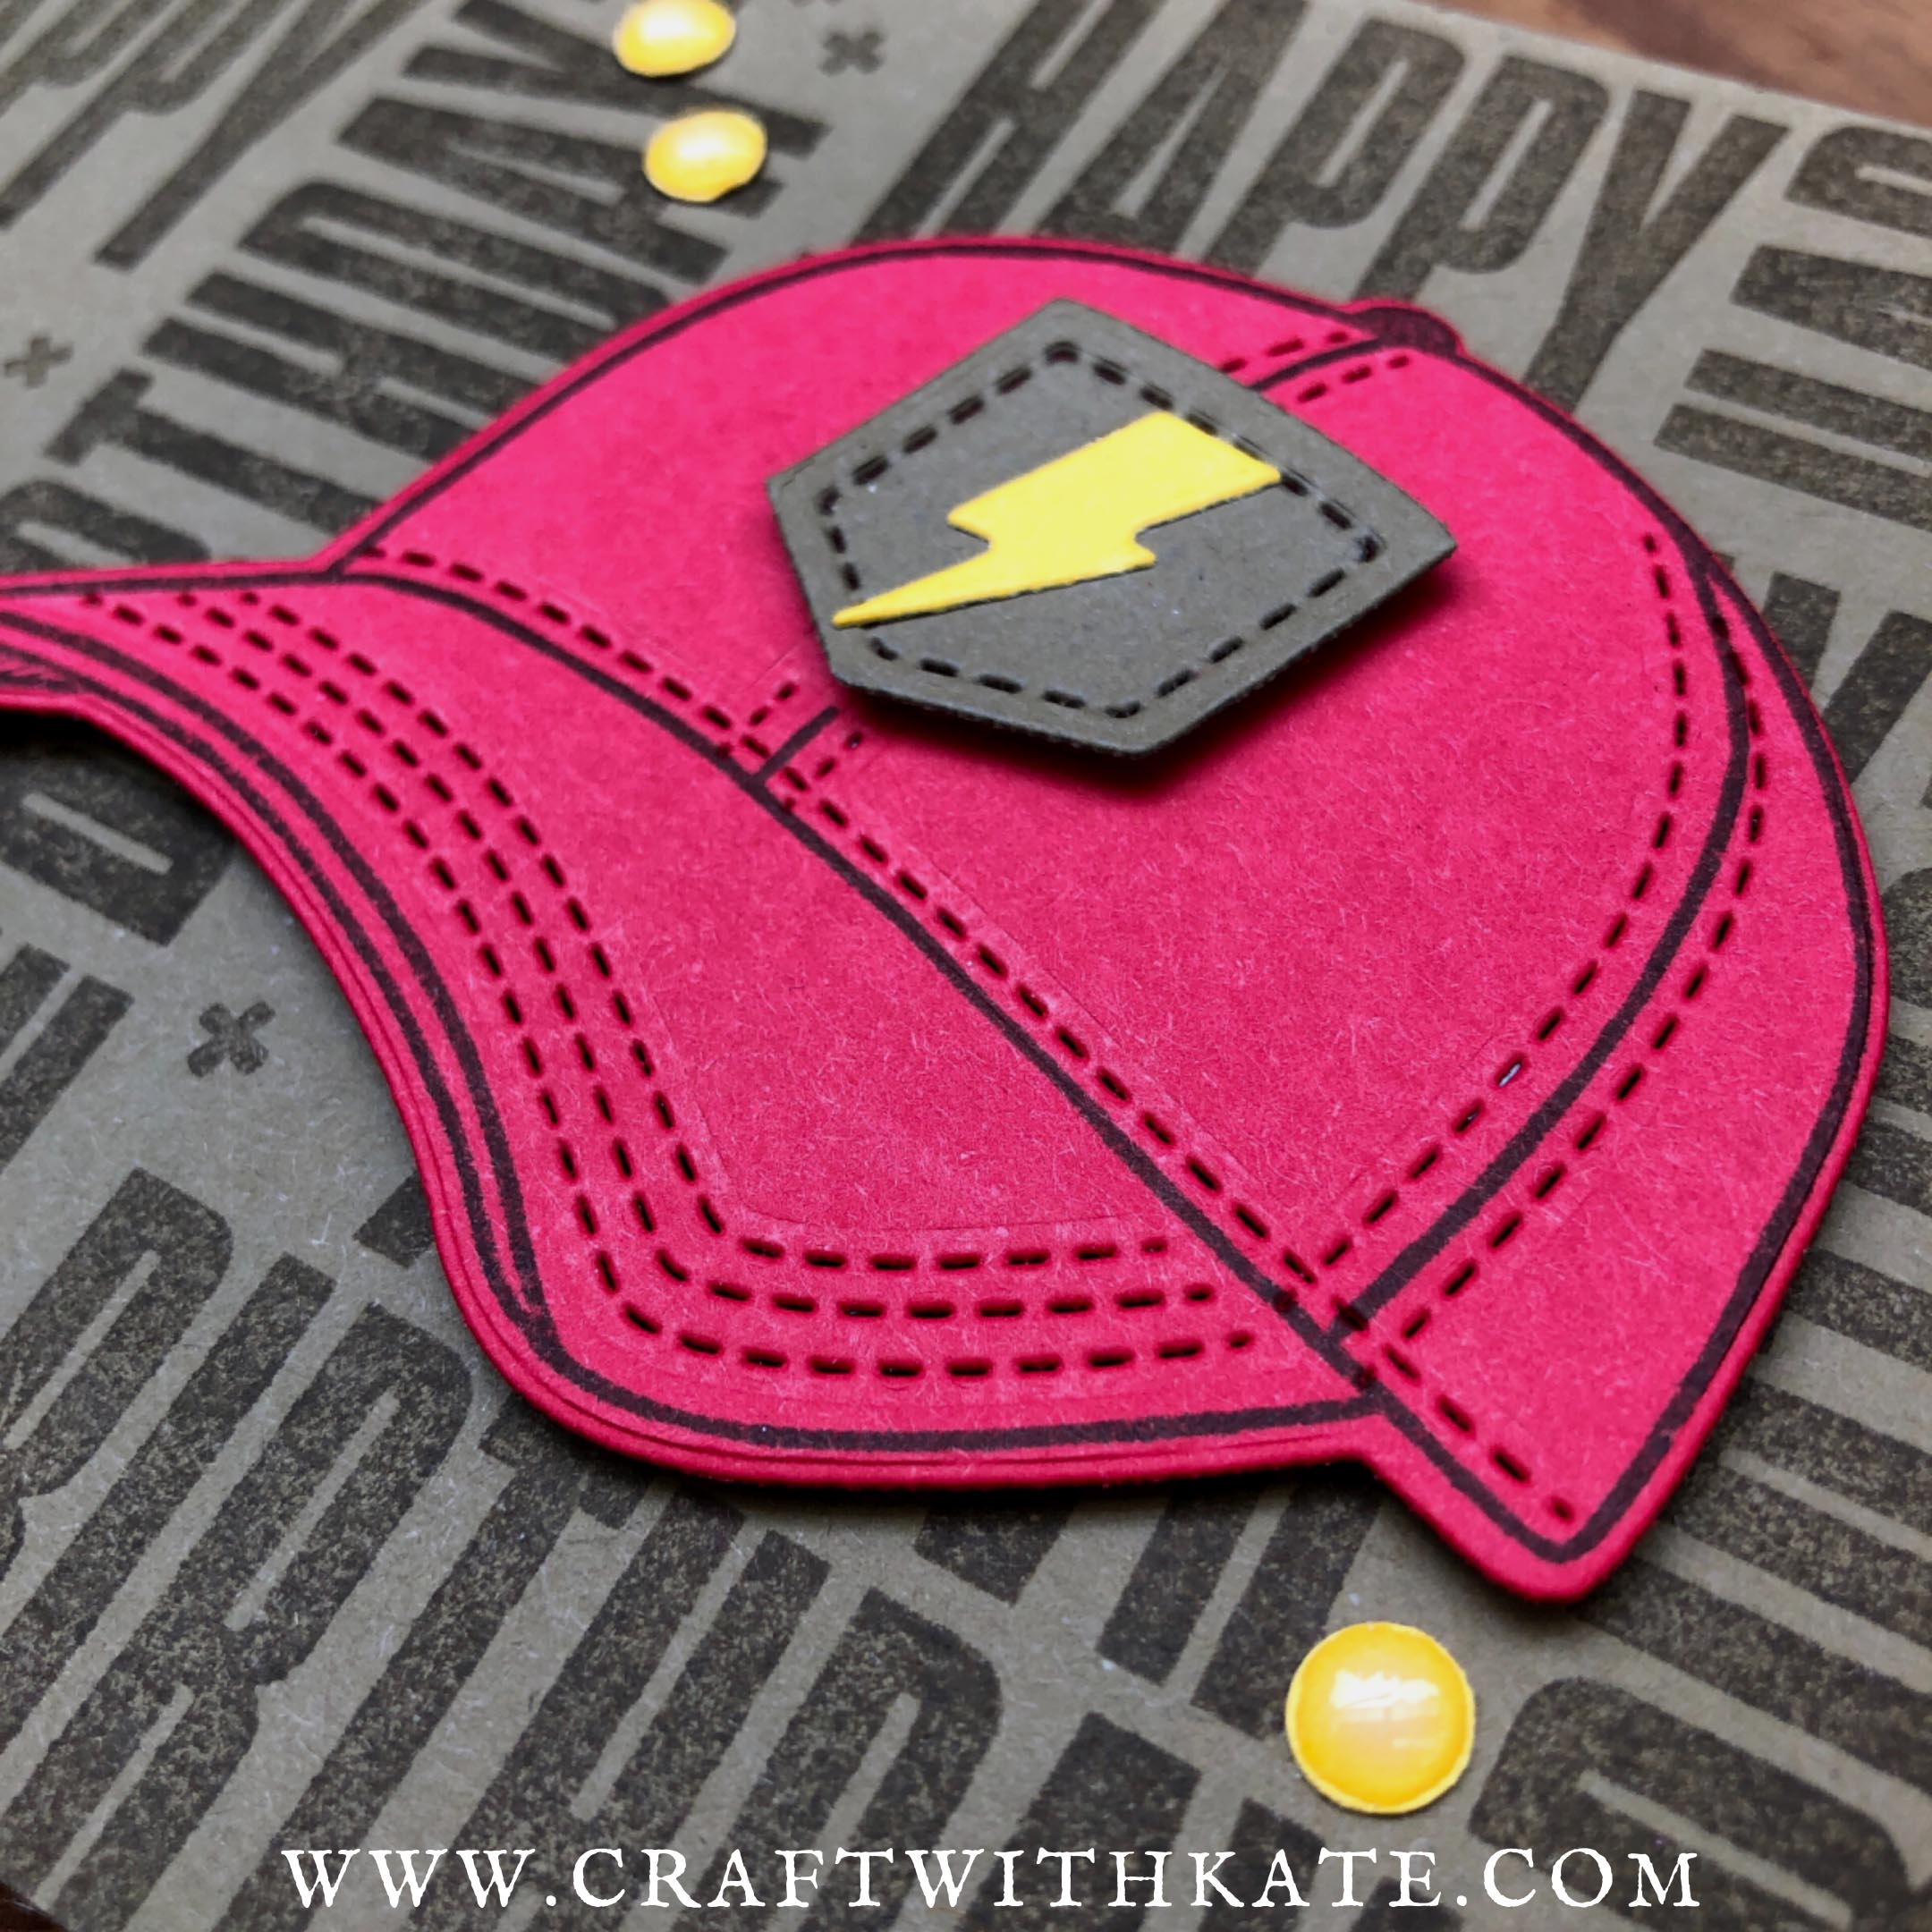 Hats Off & Biggest Wish, Stampin Up by Kate Morgan, Australia 2021 Colour Creations Showcase..